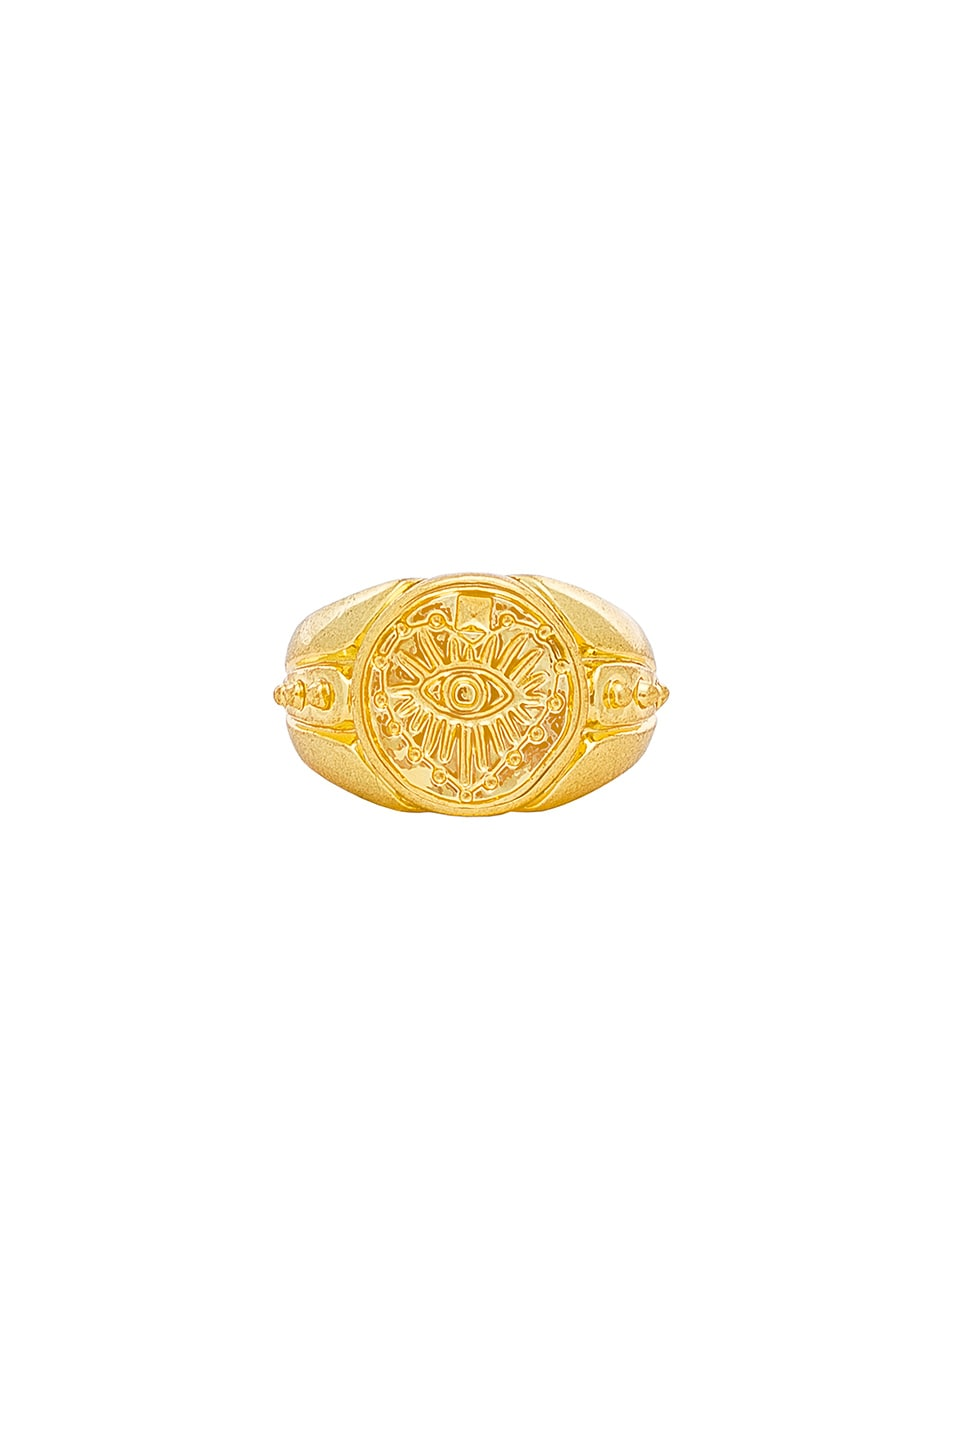 THE EVIL EYE COIN SIGNET PINKY RING